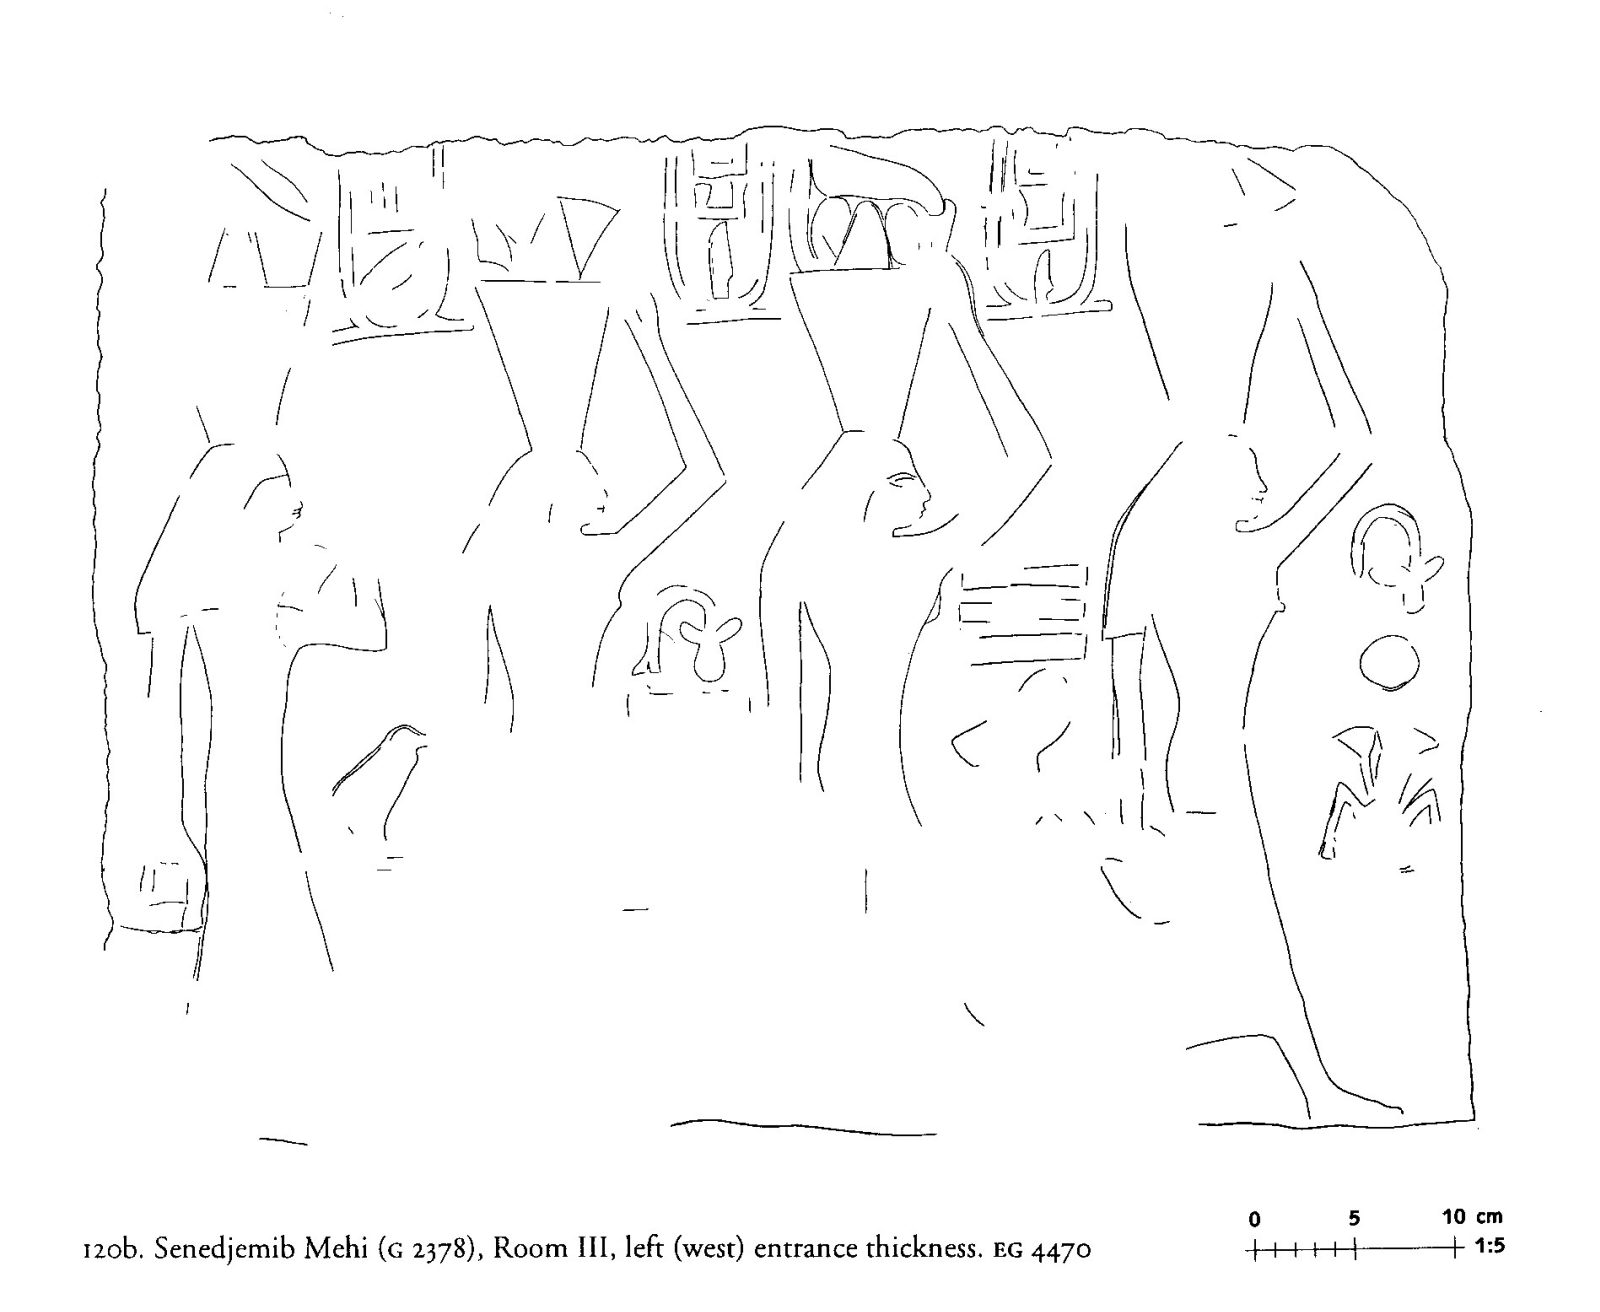 Drawings: G 2378: relief from Room III, W entrance thickness